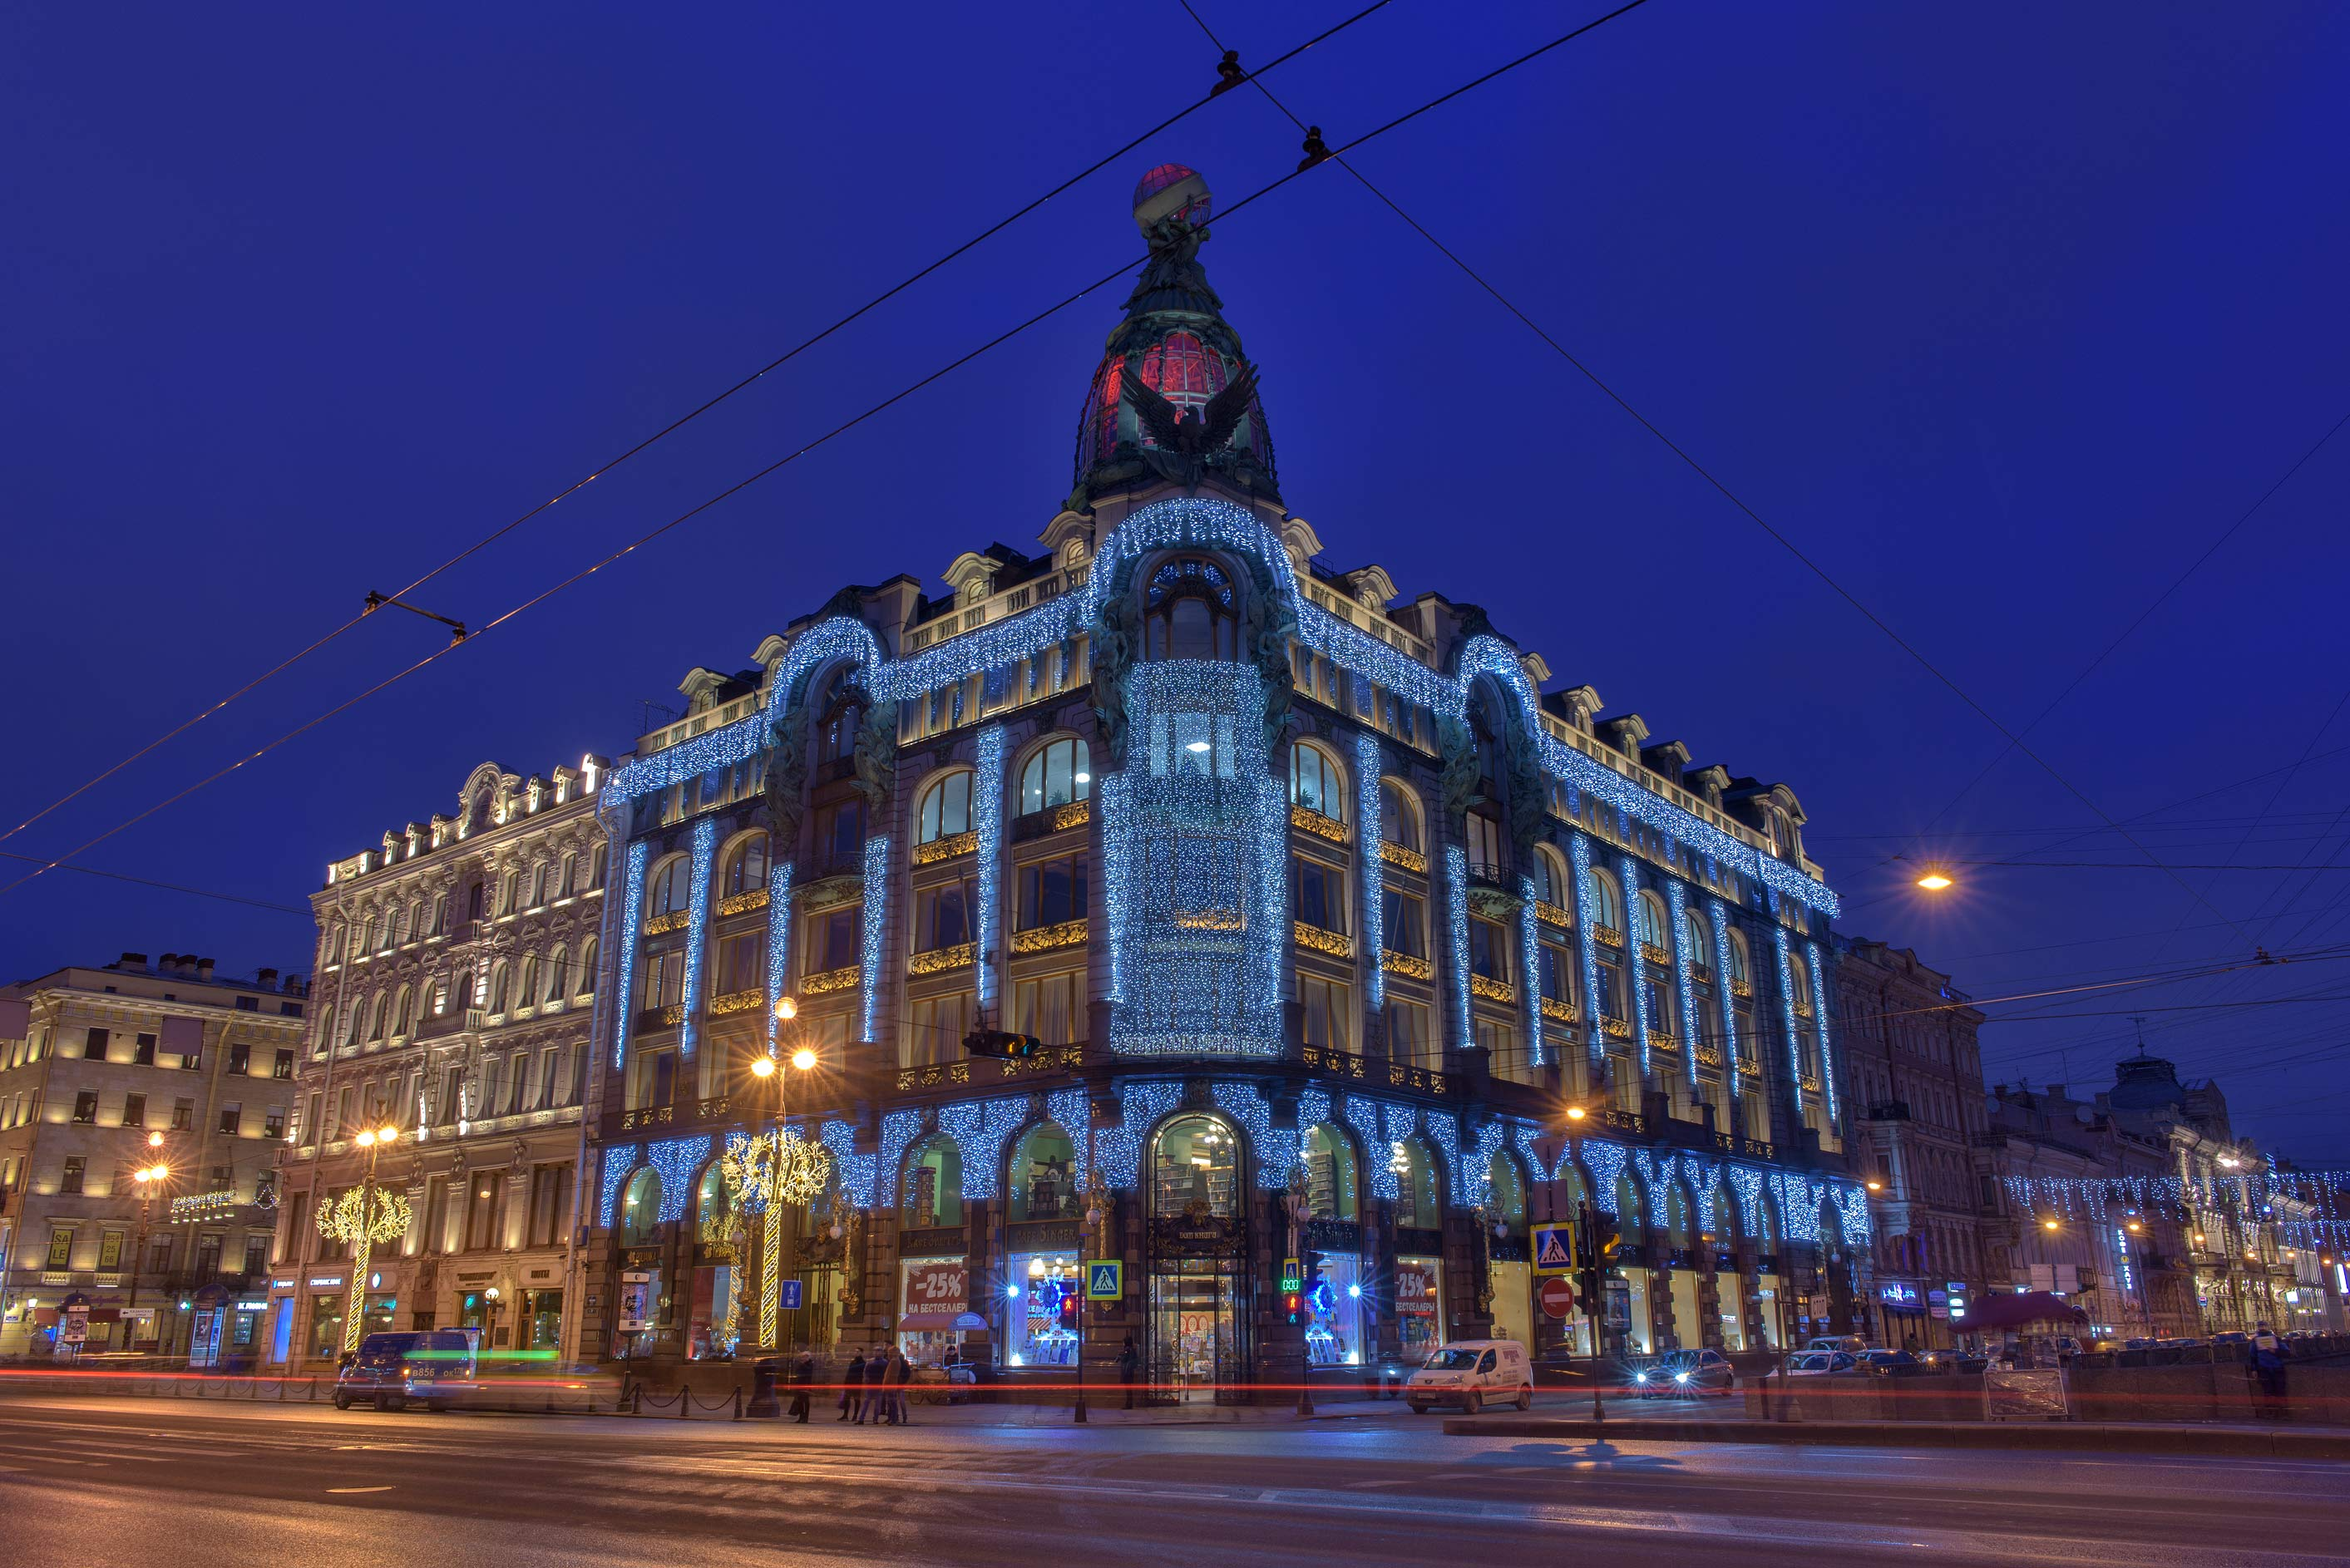 Zinger House on Nevsky Prospect. St.Petersburg, Russia